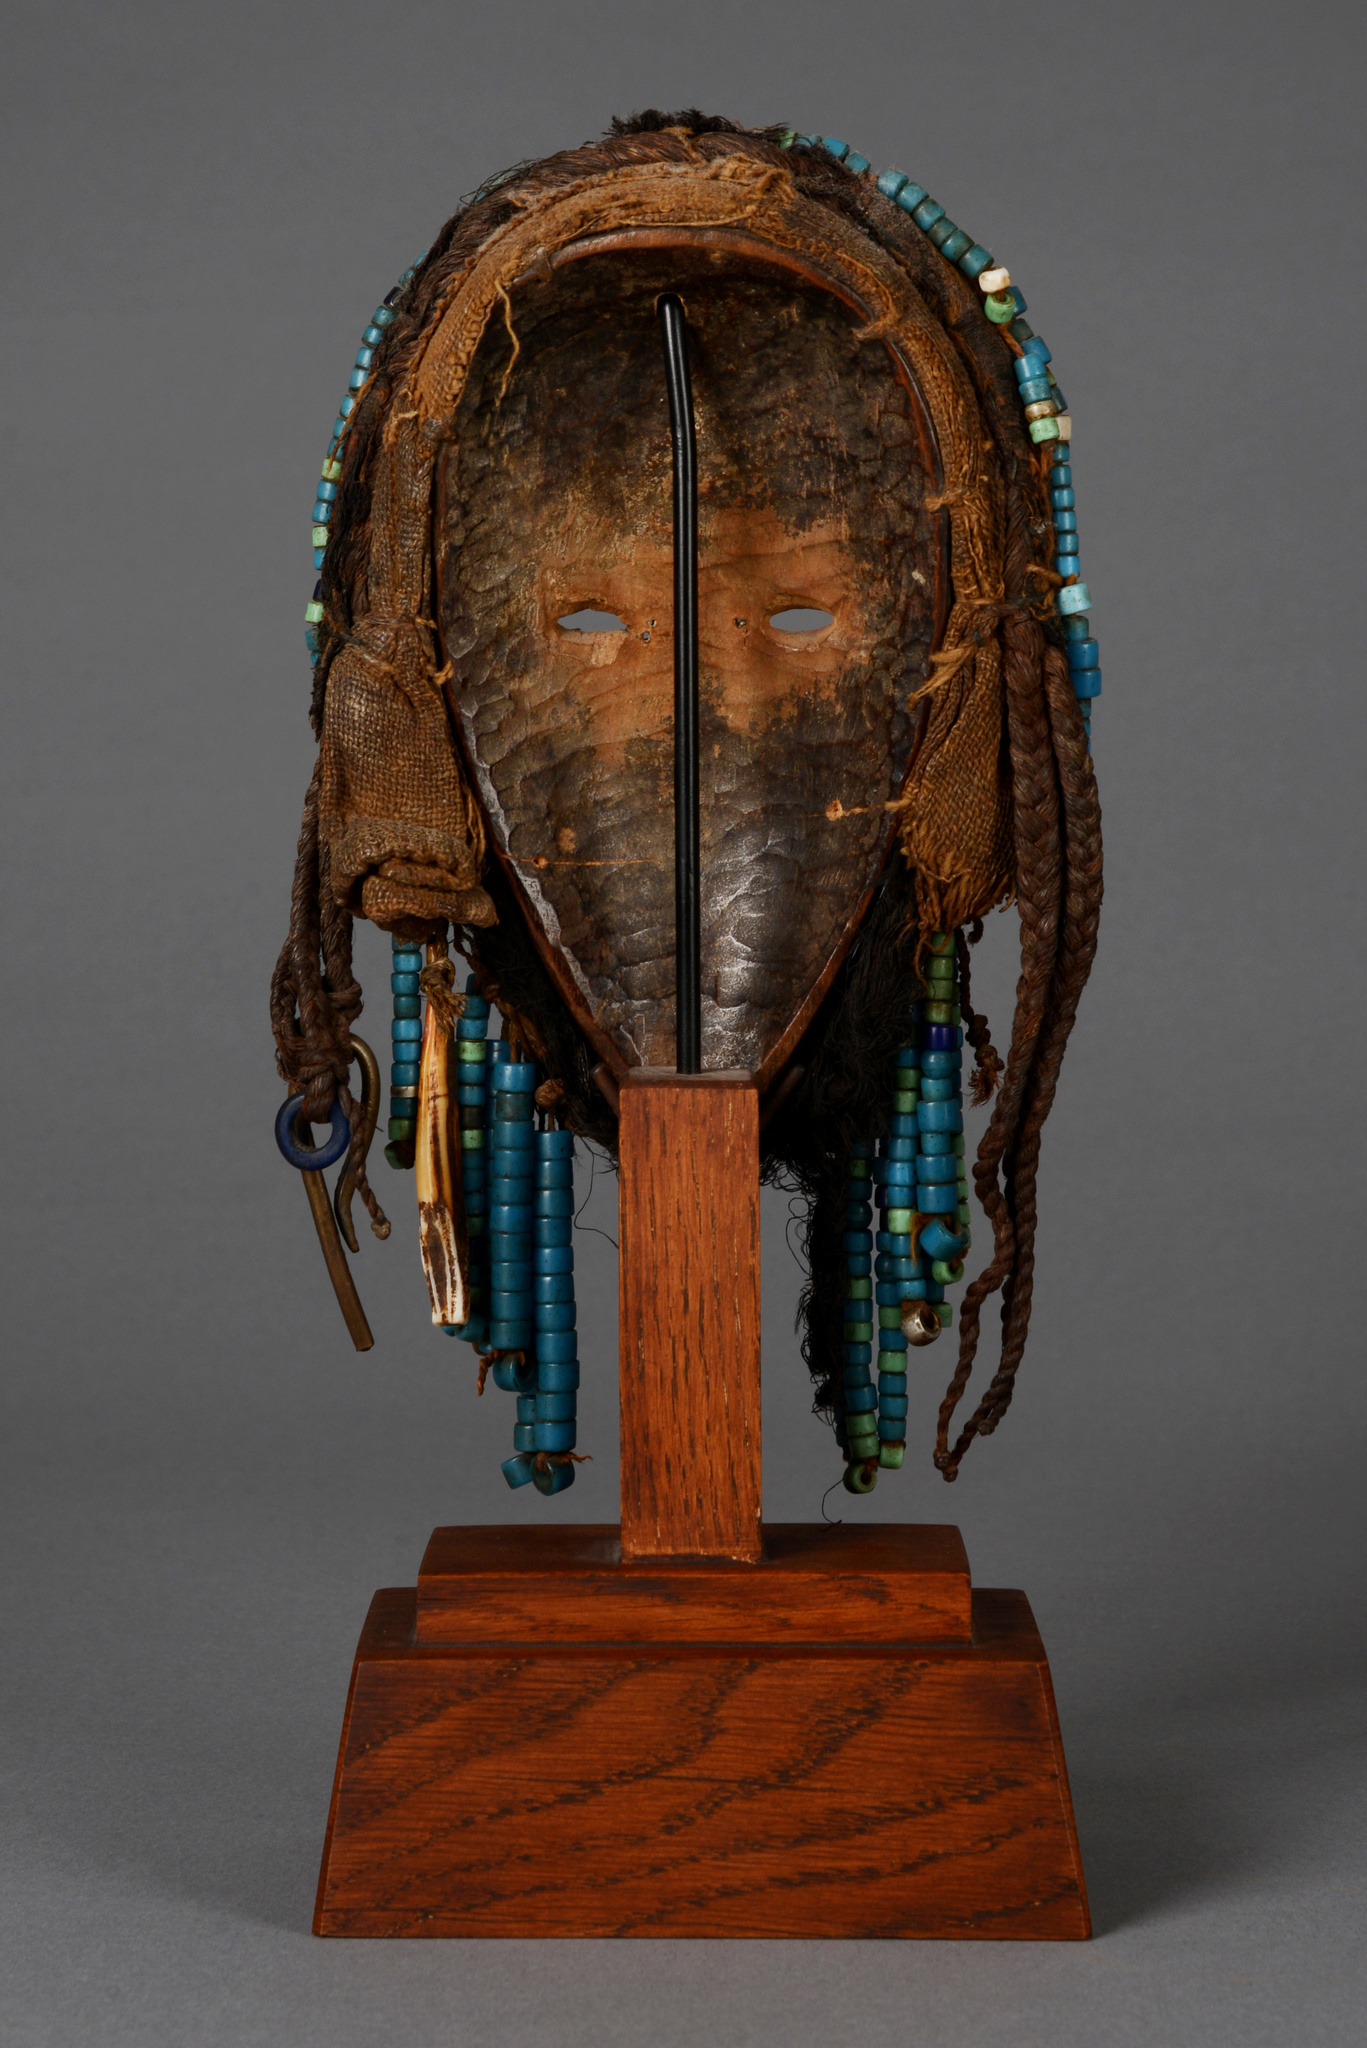 Small anthropomorphic mask with beaded wreath